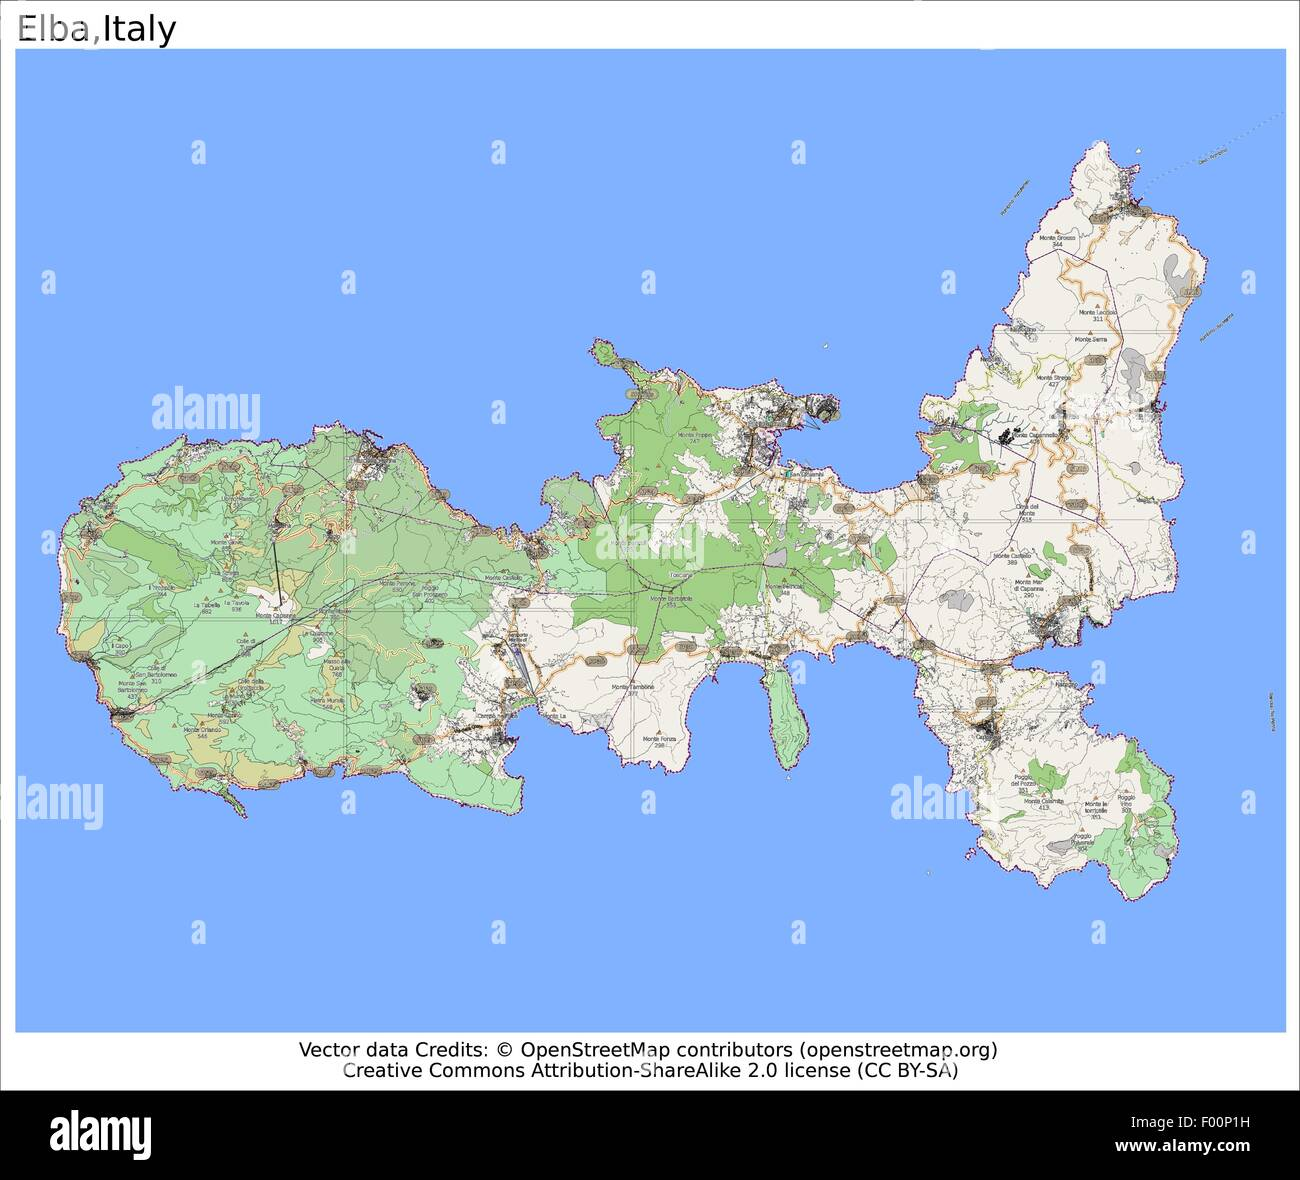 Elba island Italy Country city island state location map Stock